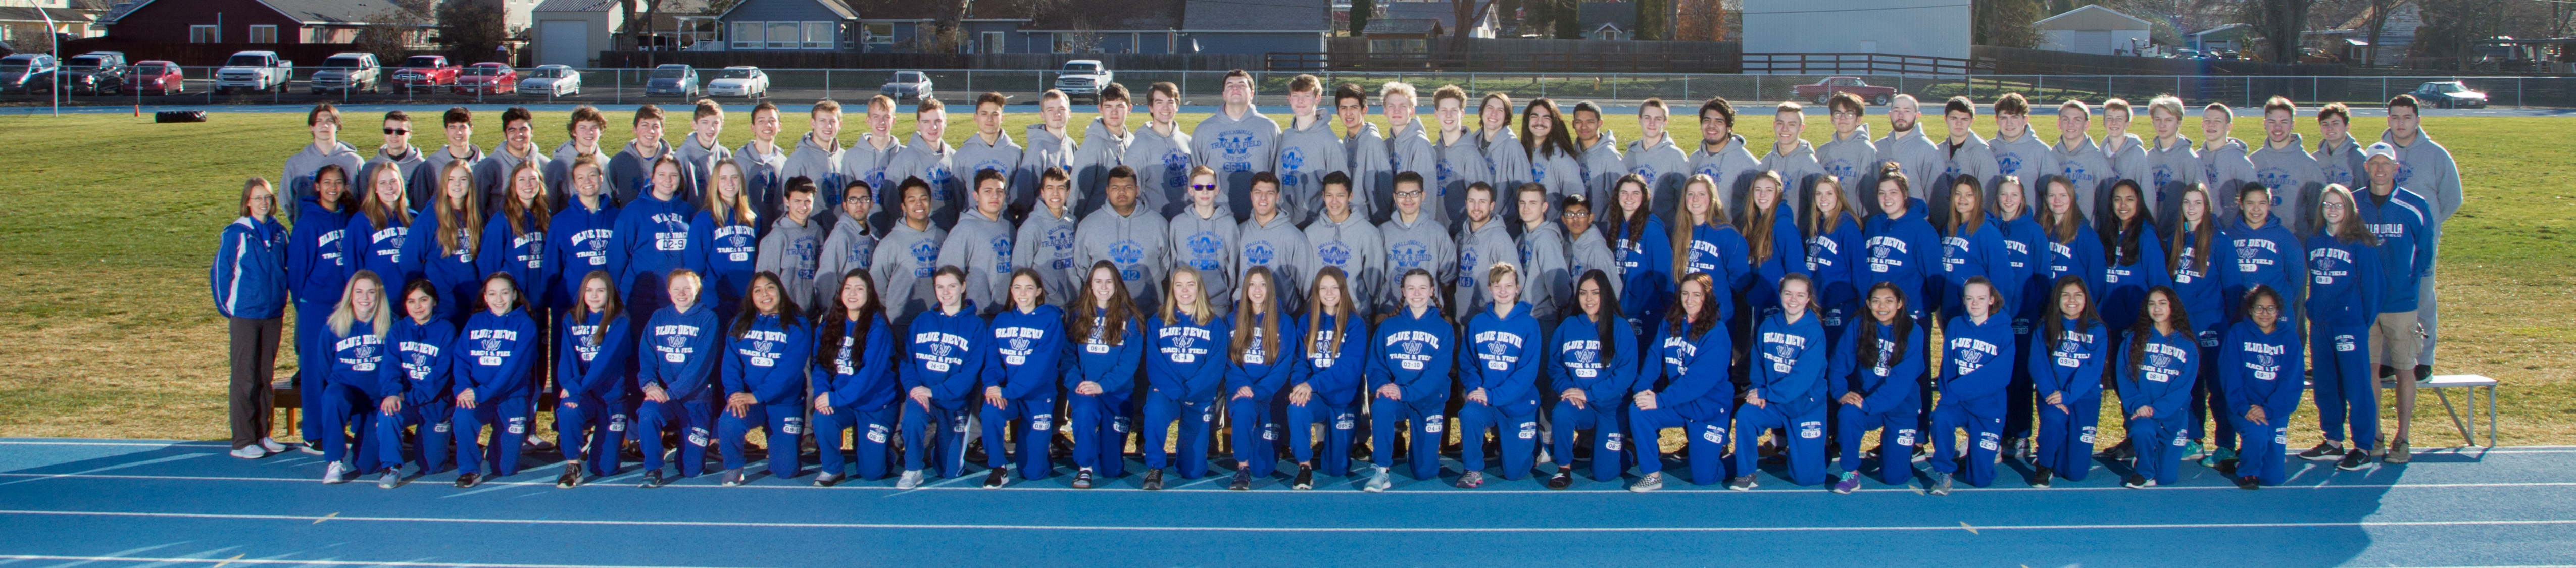 images/athletics/Track/2018_Track__Field_Team.jpg